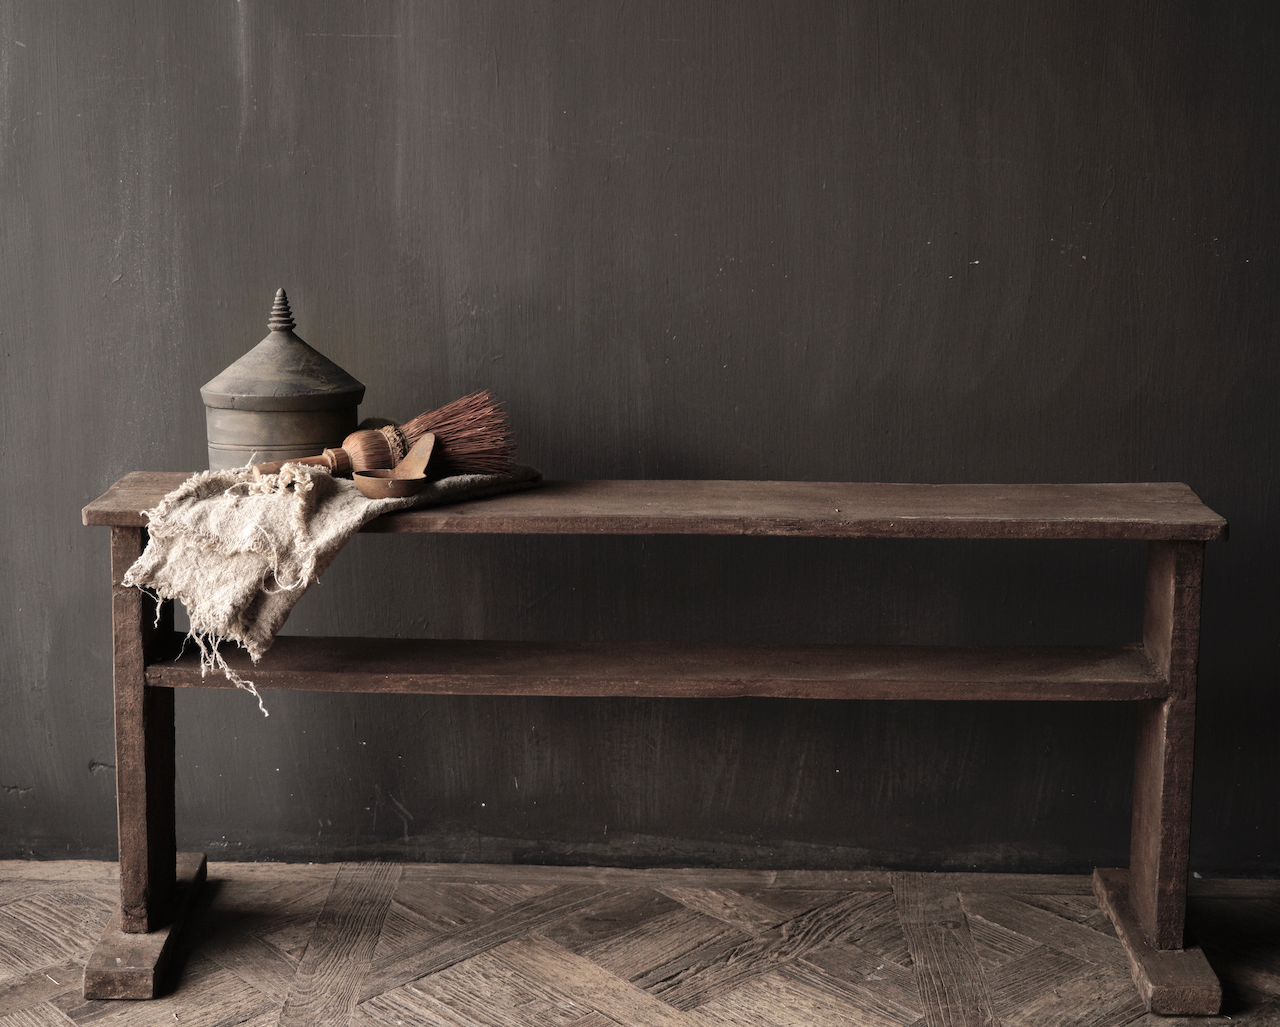 Old wooden bench with bottom shelf-2